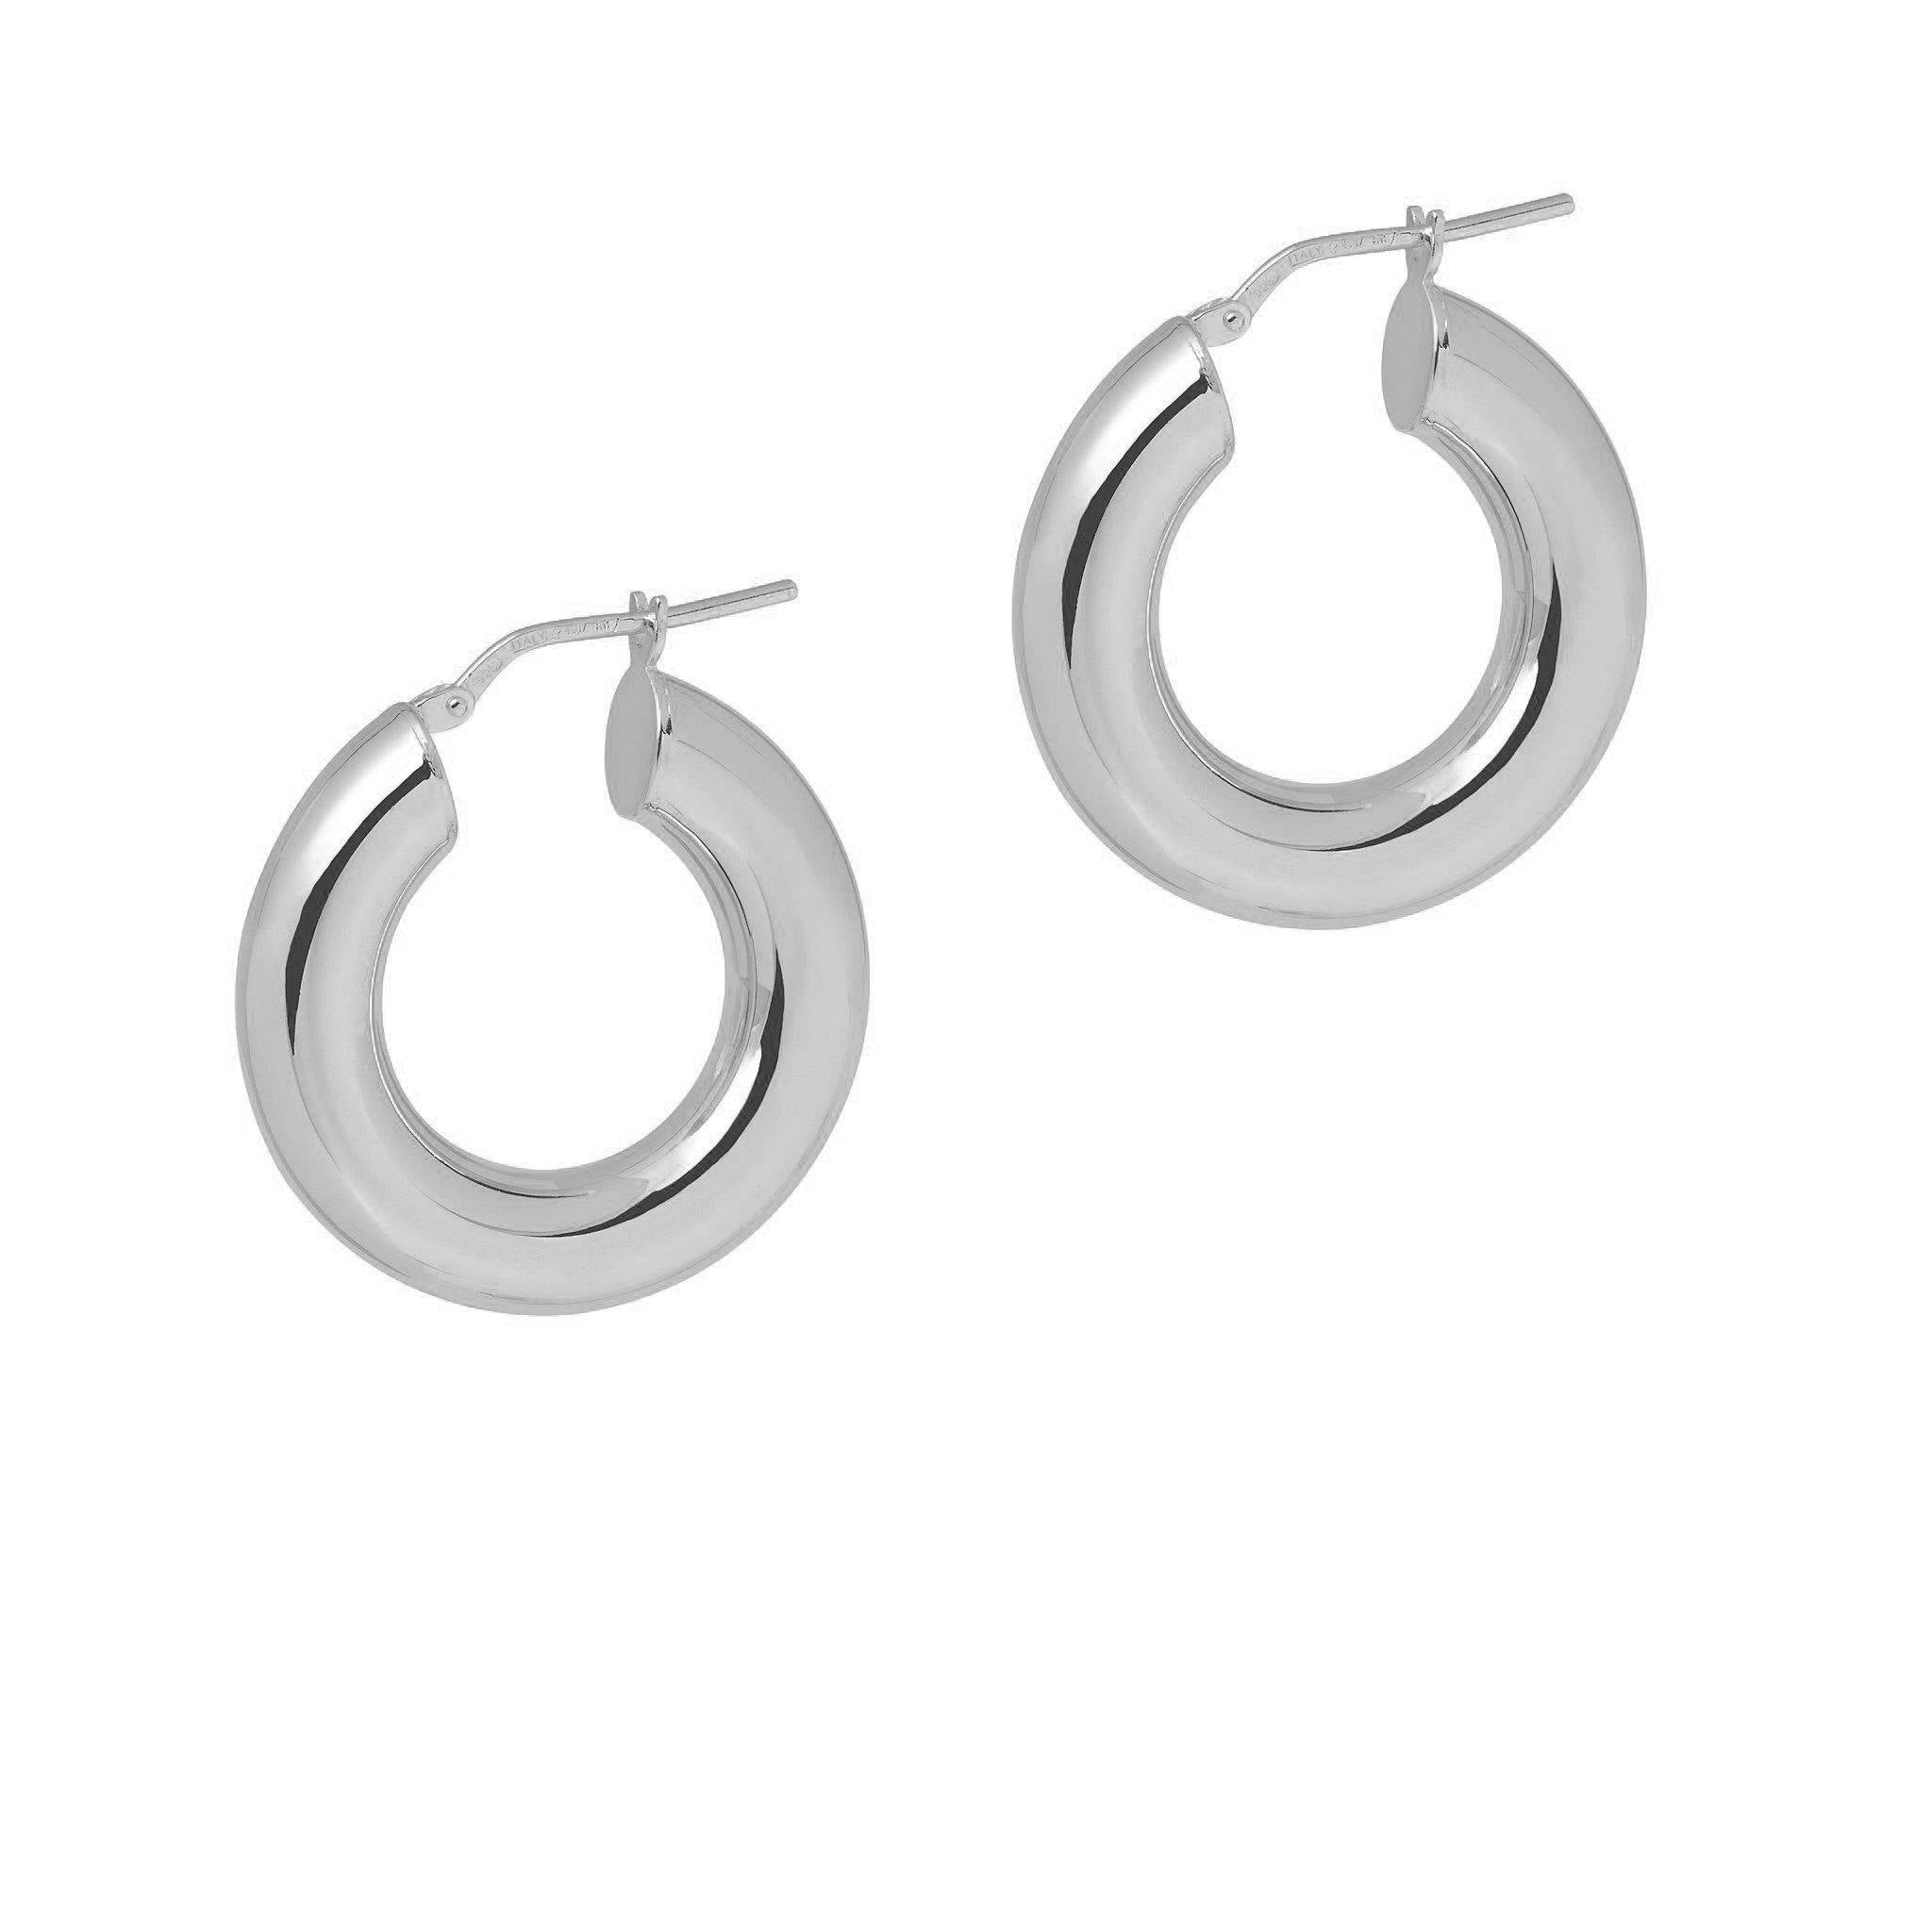 La CURVACEOUS - Silver (5 x diameters) - The Hoop Station 925 Sterling Silver Hoop Earrings Gold Huggies